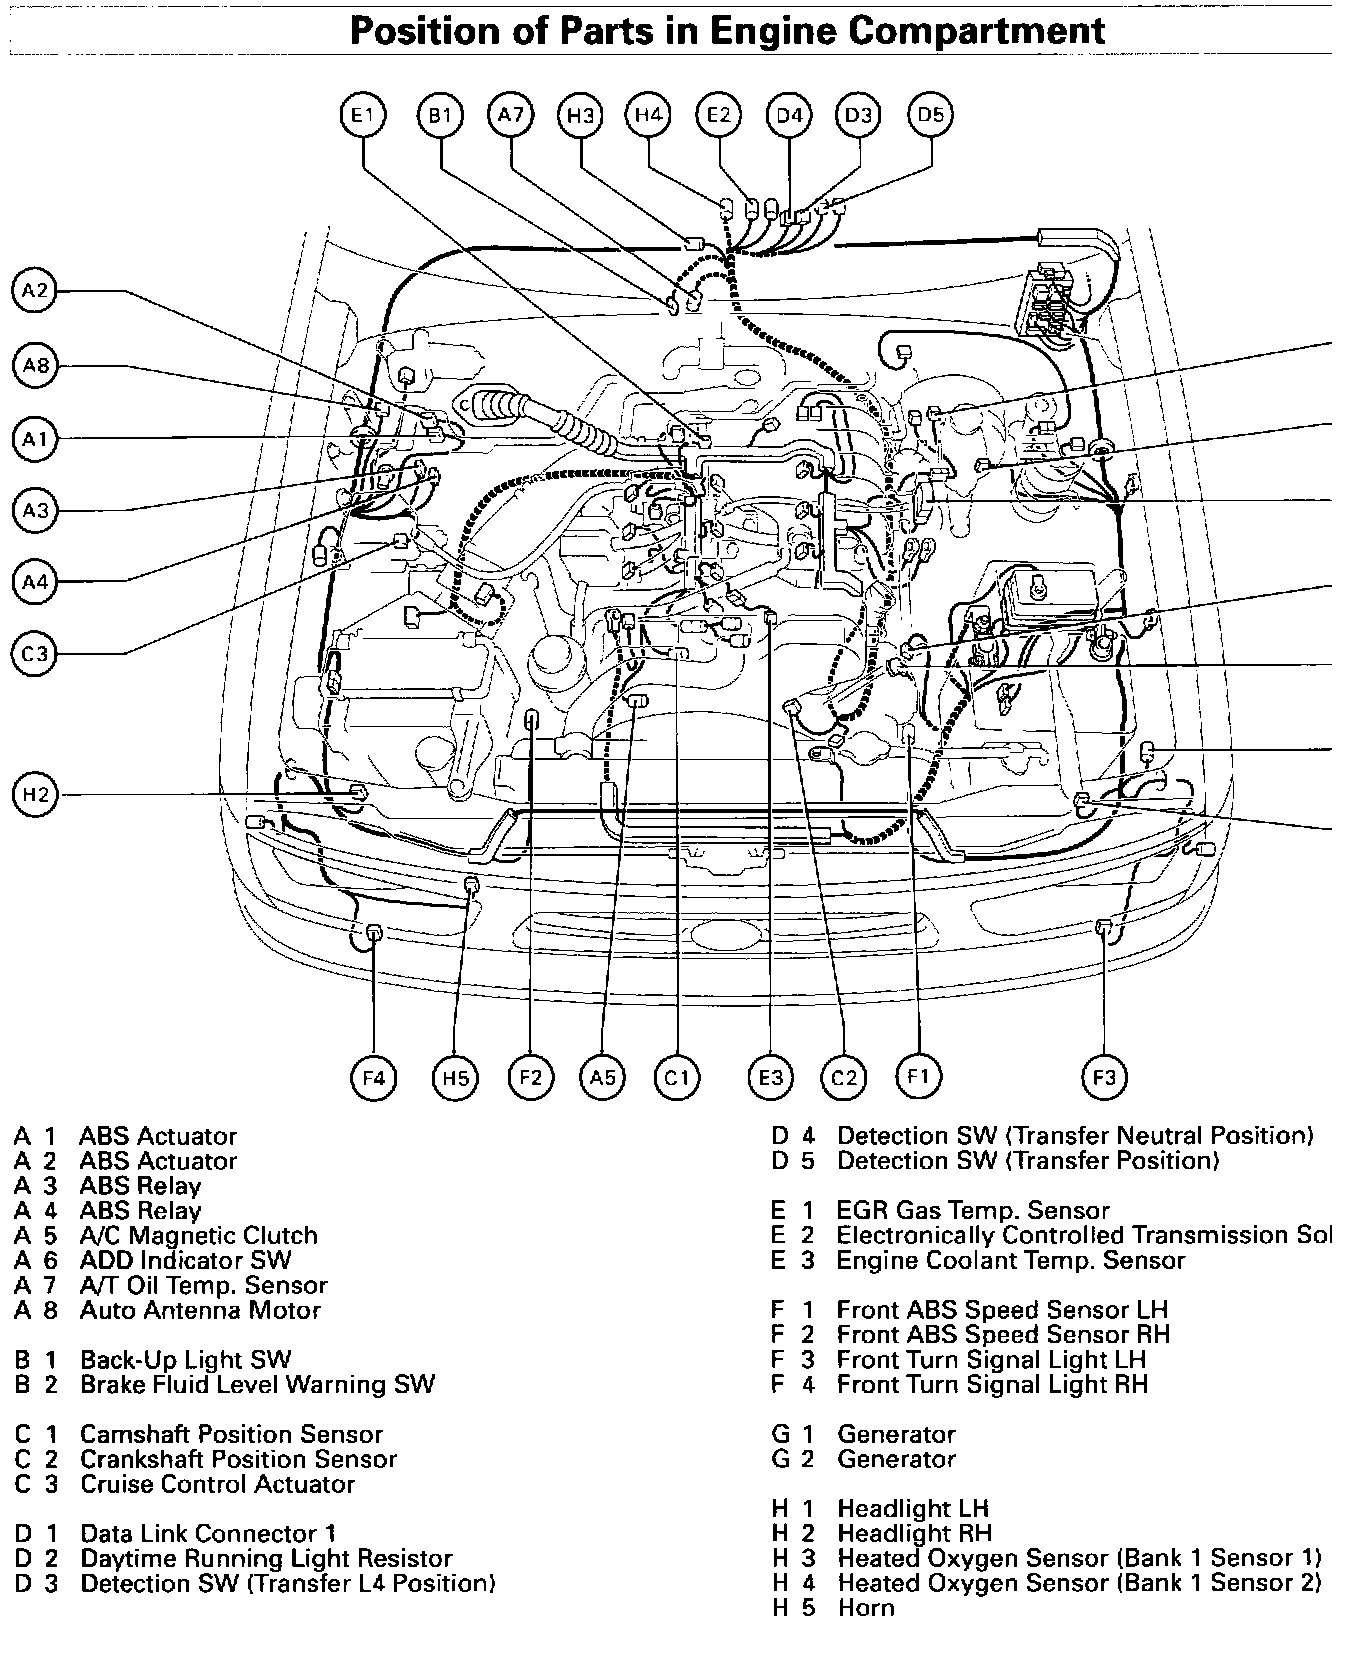 Toyota Tacoma Engine Diagram 25x4 Sony Xplod Wiring Diagram Begeboy Wiring Diagram Source